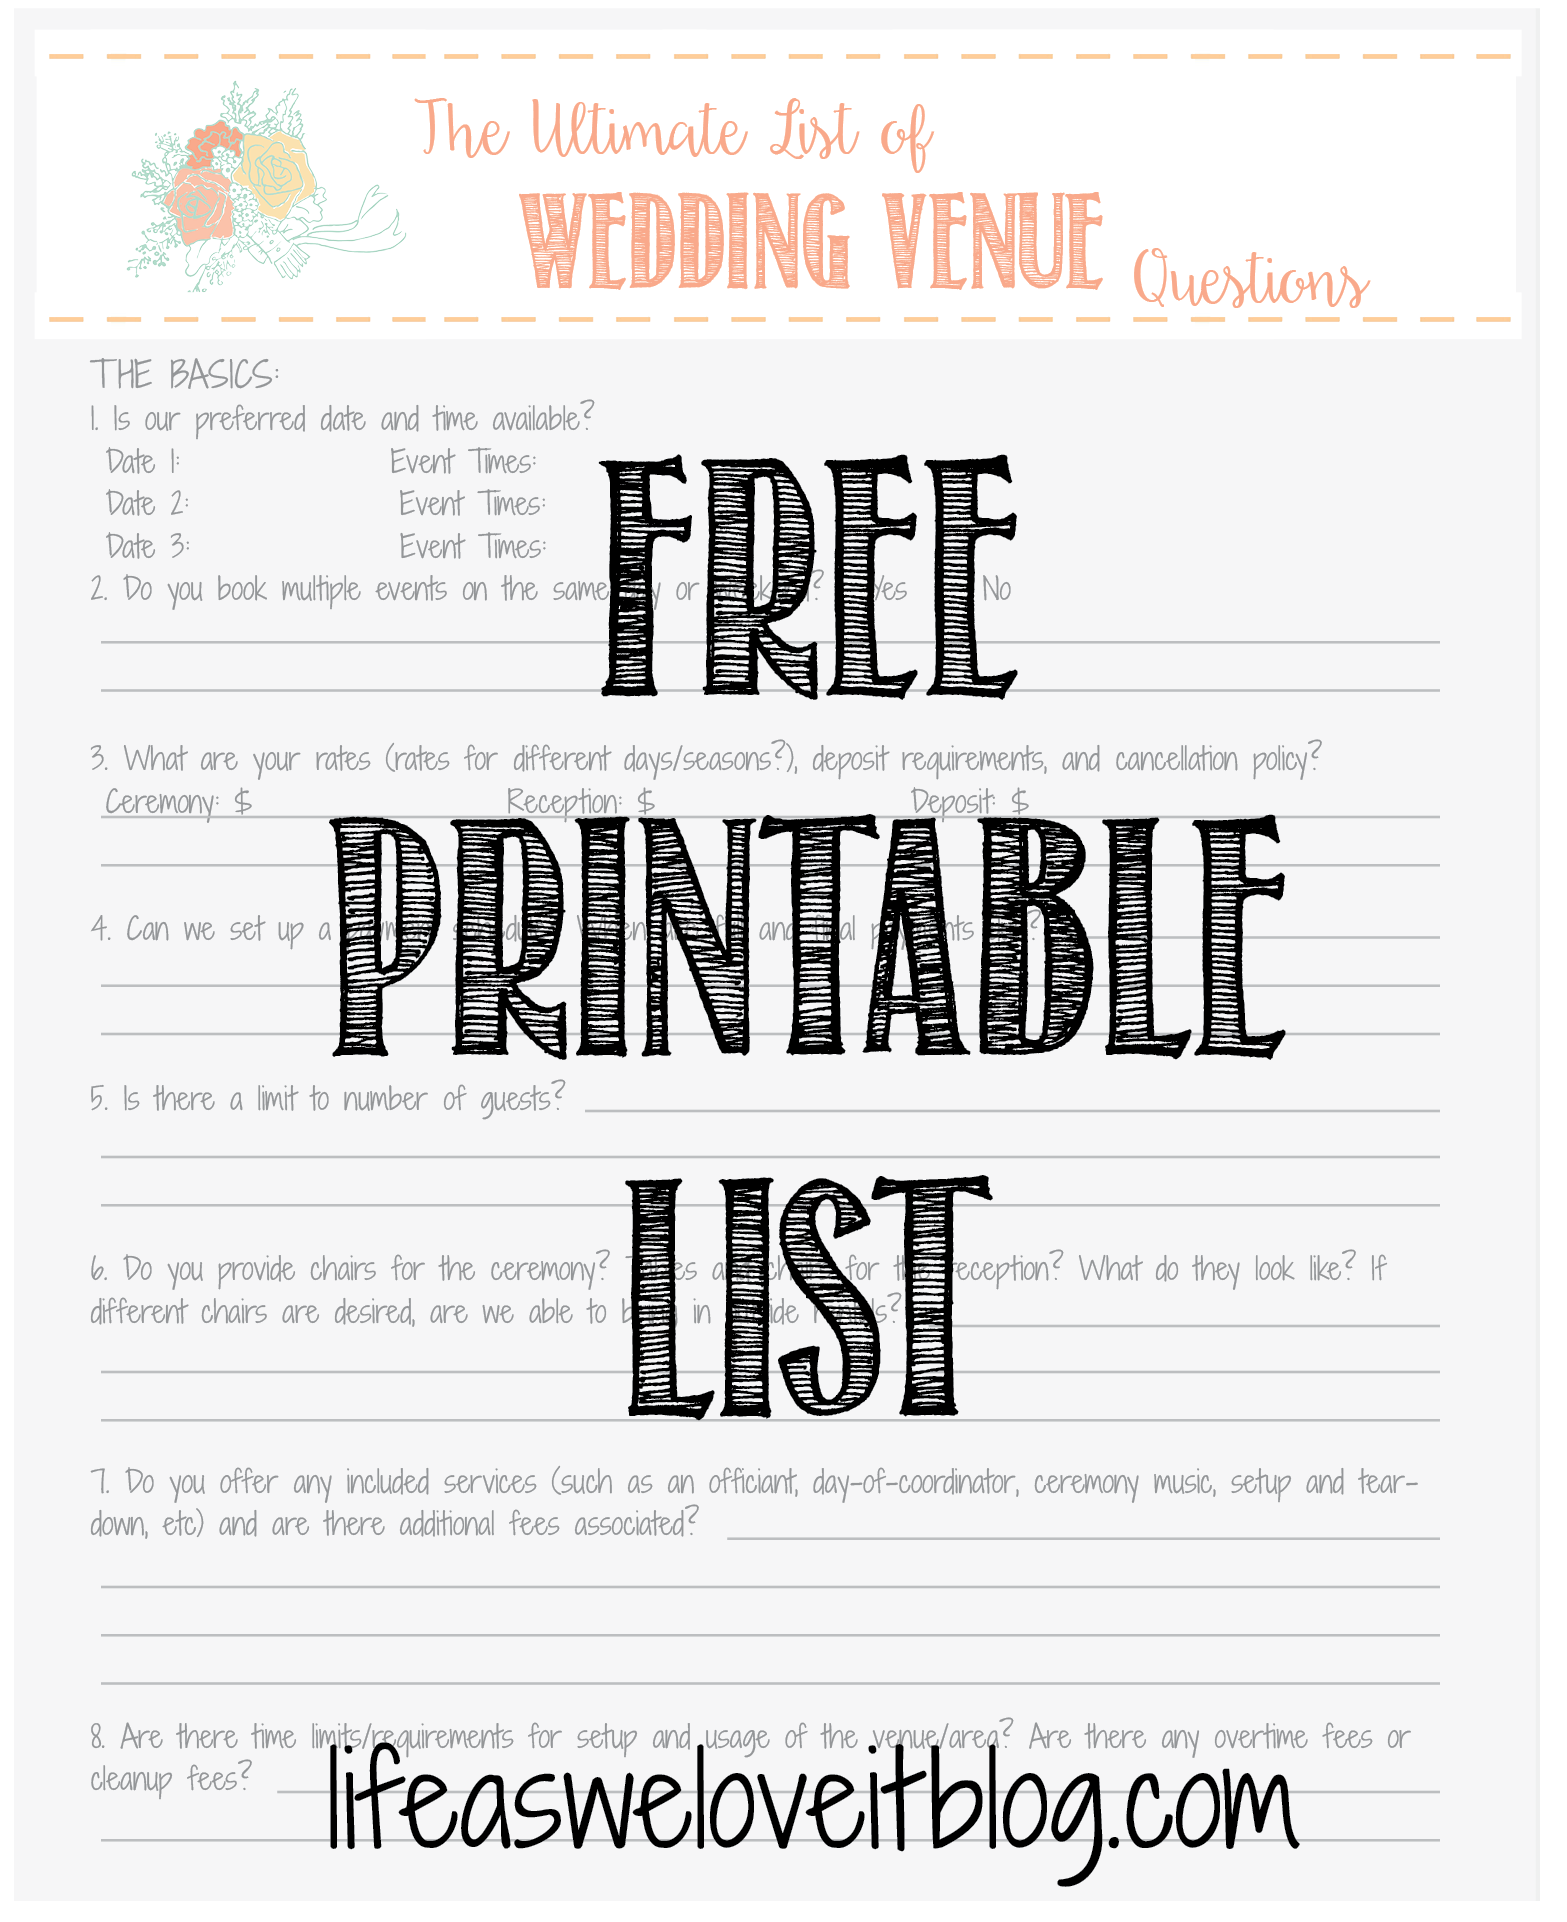 Wedding Venue Questions Printable Small Image2 E1442110301557 Png 1 567 1 922 Pixels Wedding Venue Questions Wedding Venues Checklist Wedding Venues